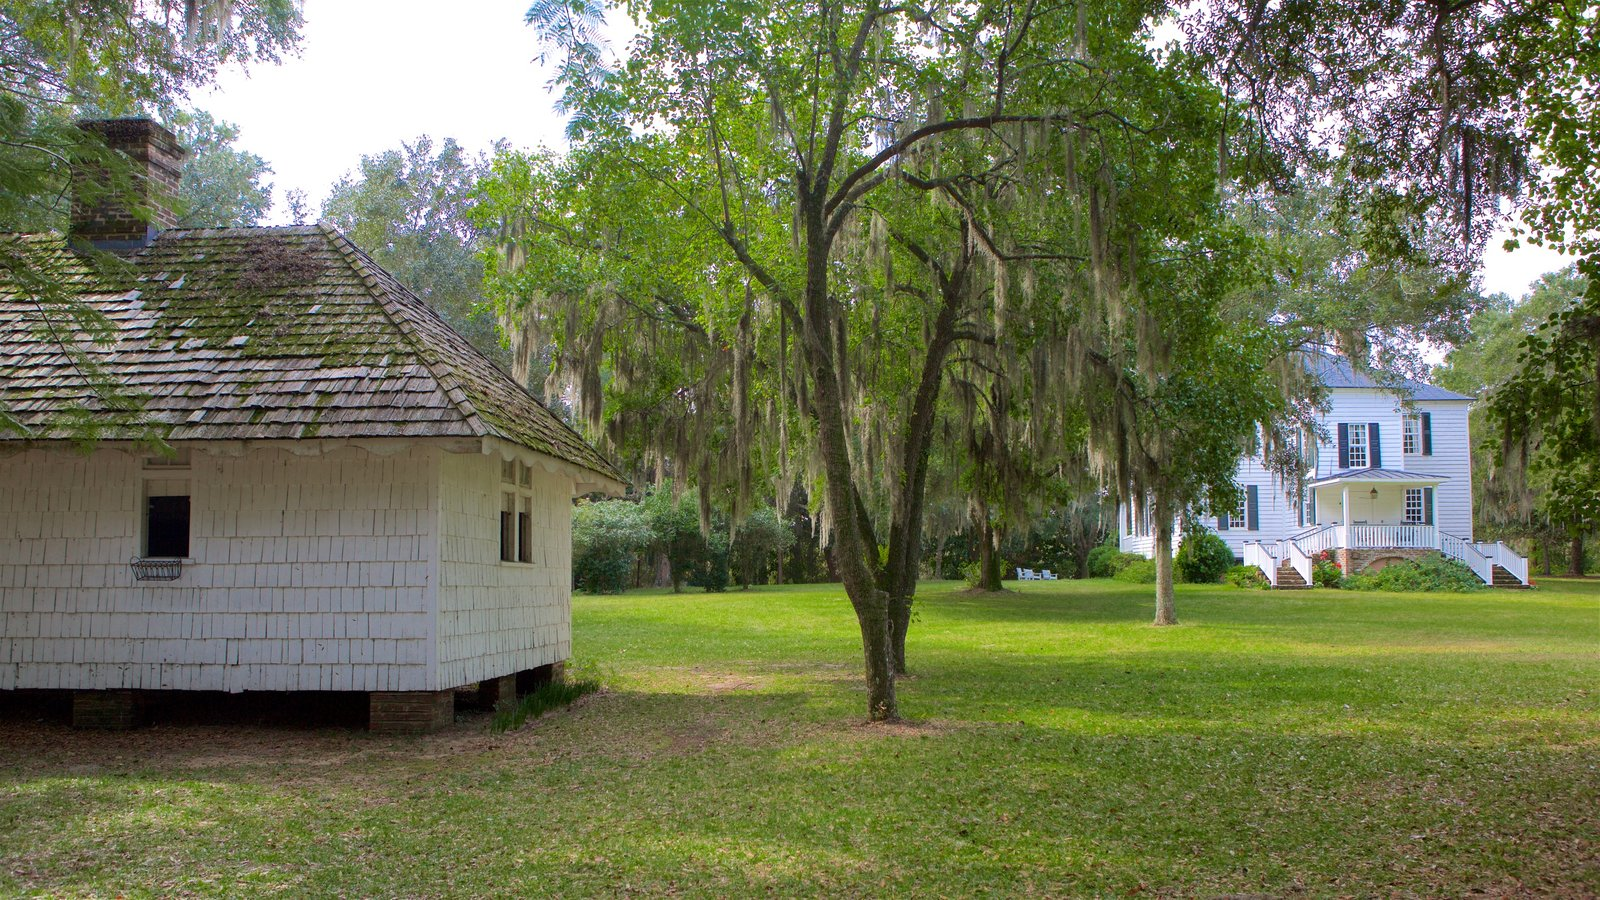 Gardens & Parks Pictures: View Images of Myrtle Beach